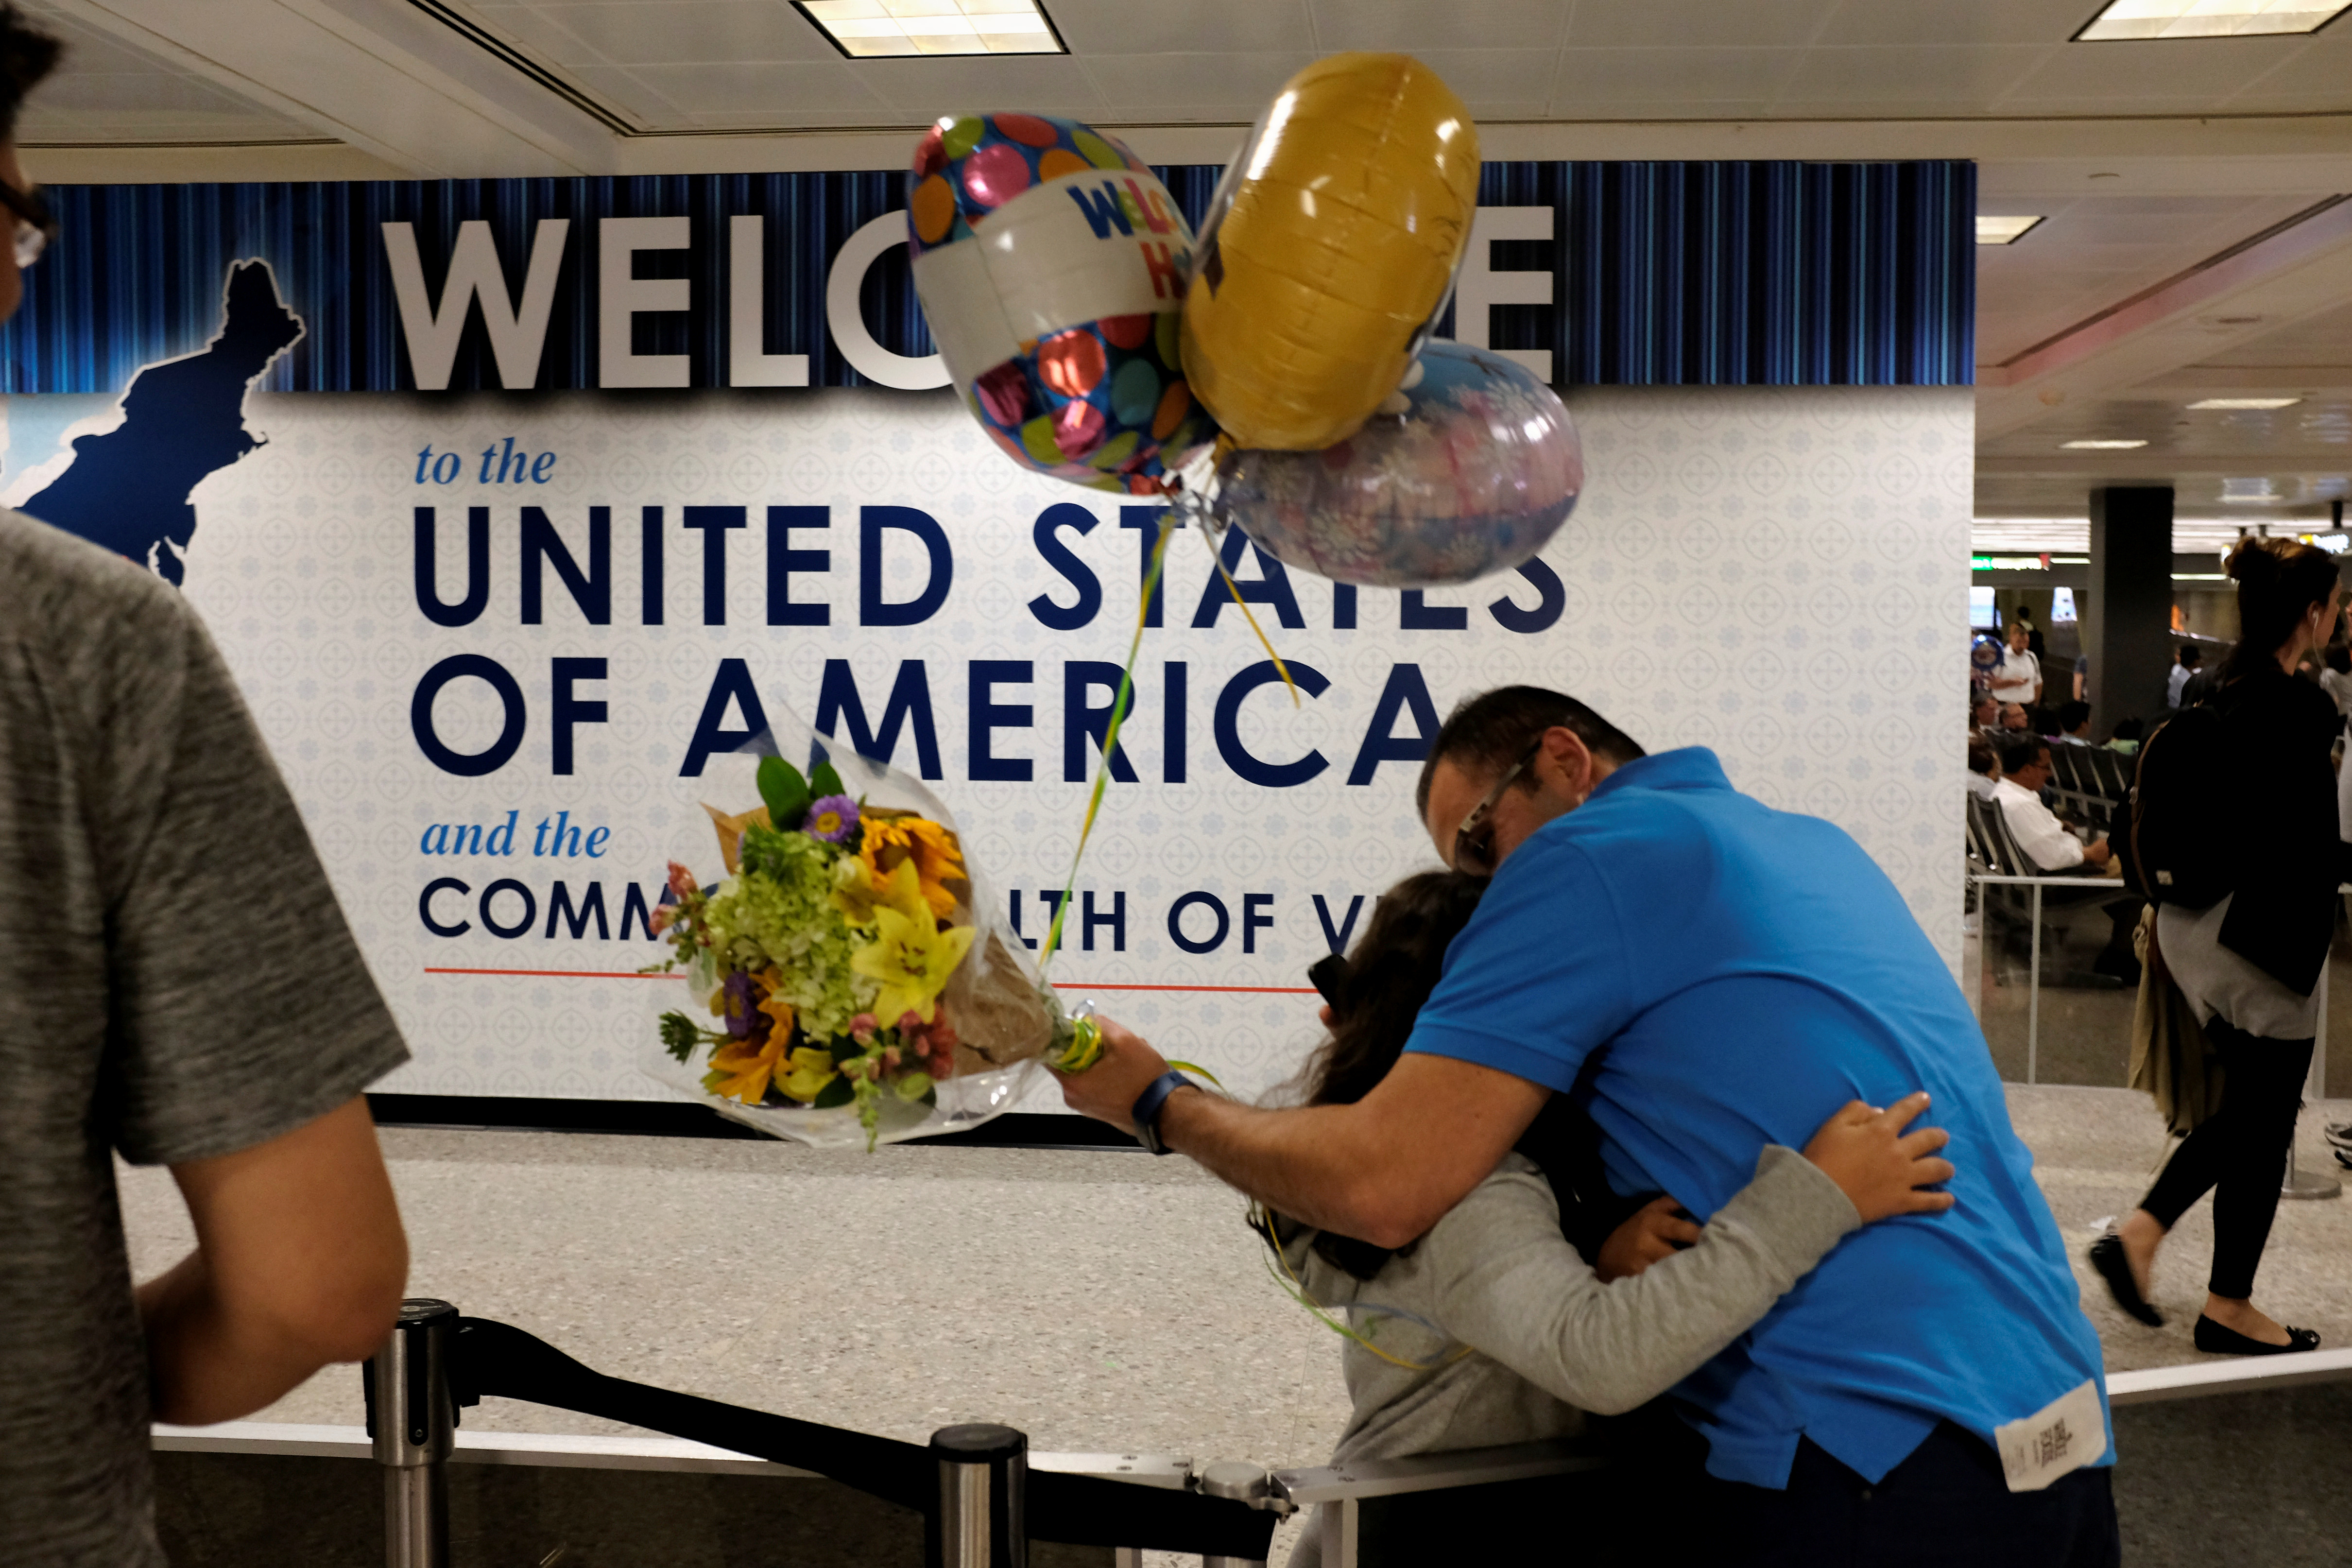 Ahmed Khalil, an Egyptian national residing in the United States, hugs his daughters as they arrive at Washington Dulles International Airport after the Trump administration's travel ban was allowed back into effect on June 29, 2017.